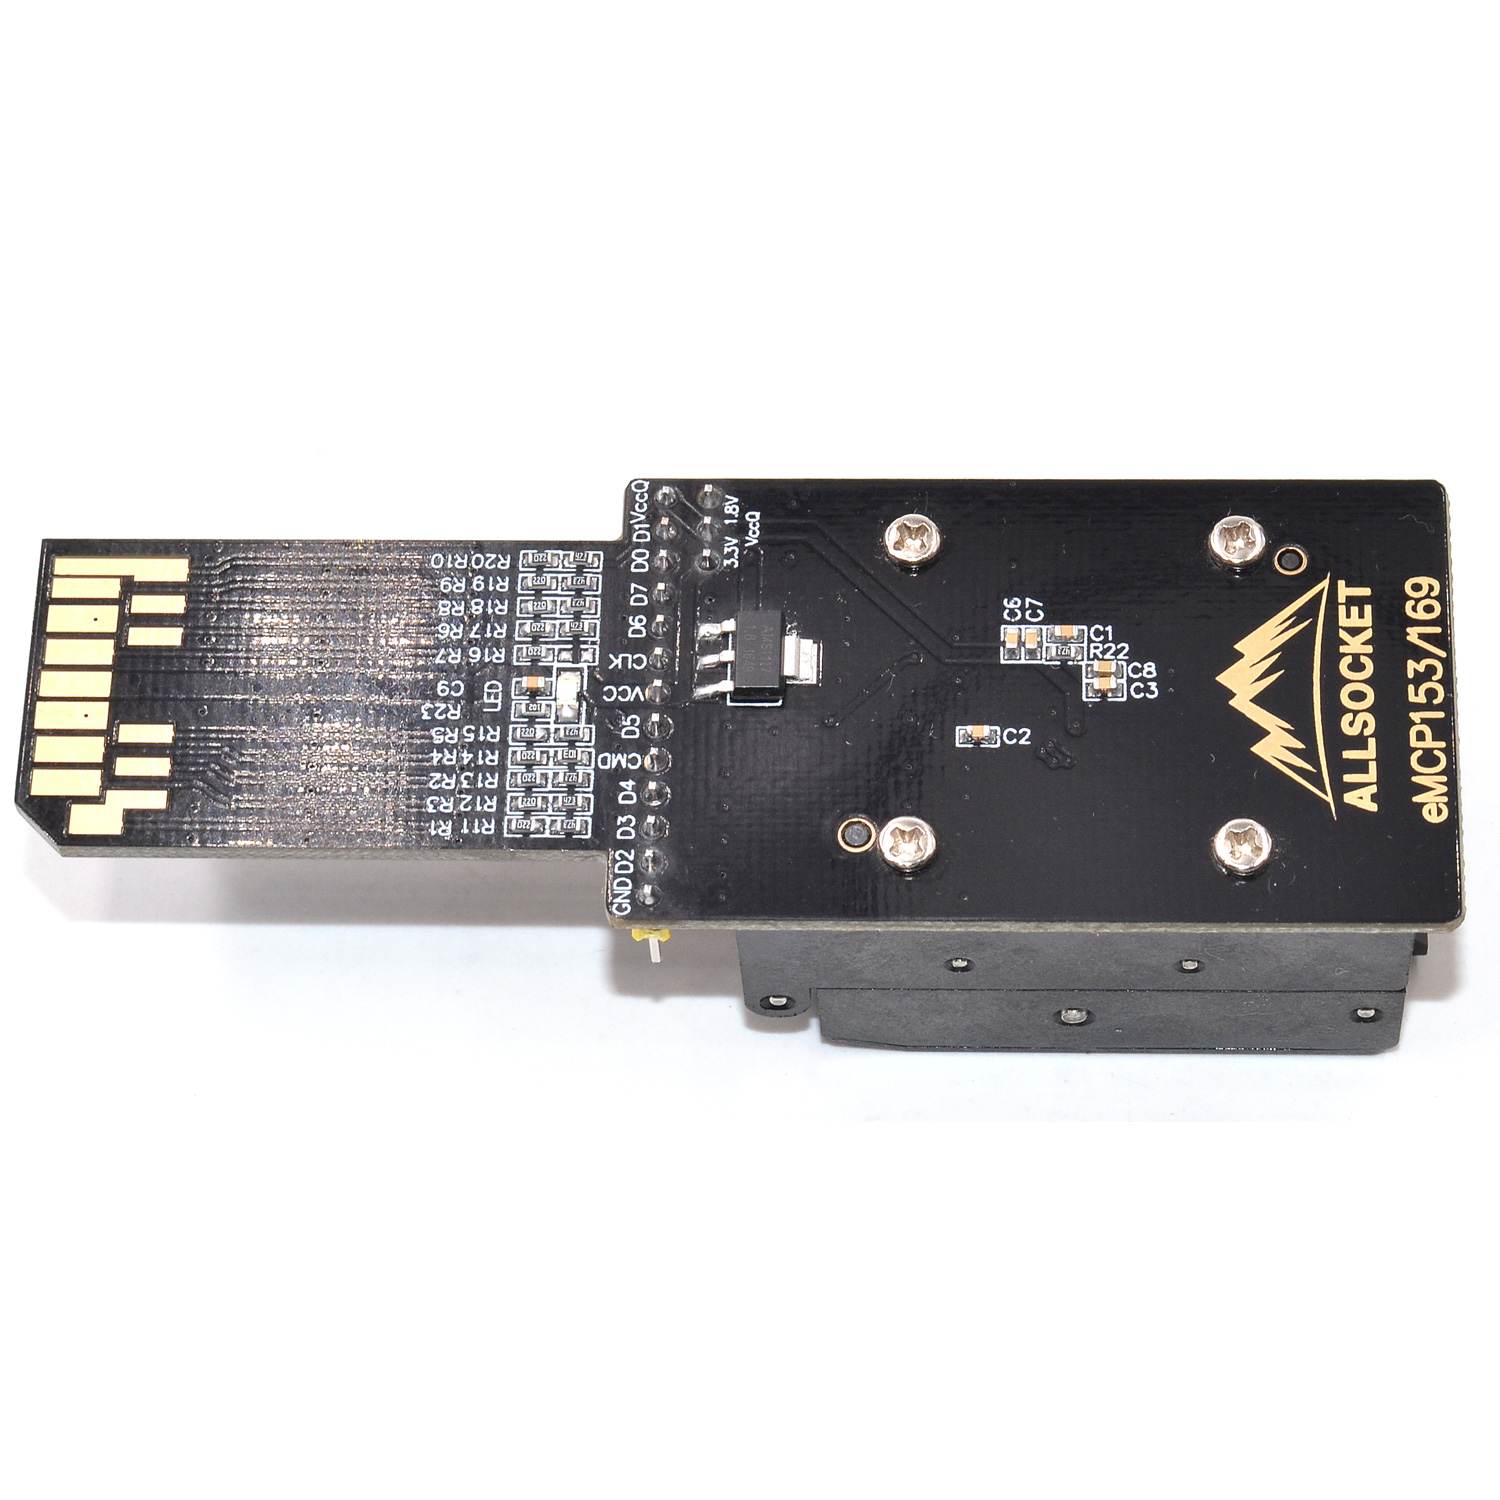 eMMC-BGA/eMMC169 BGA/eMMC153 Socket eMMC169 eMMC153 reader Socket DS3000-SD-emmc153+emmc169 Socket High quality IC eMMC153/169 reader for eMMC/BGA/eMMC169 BGA/eMMC153 package 10